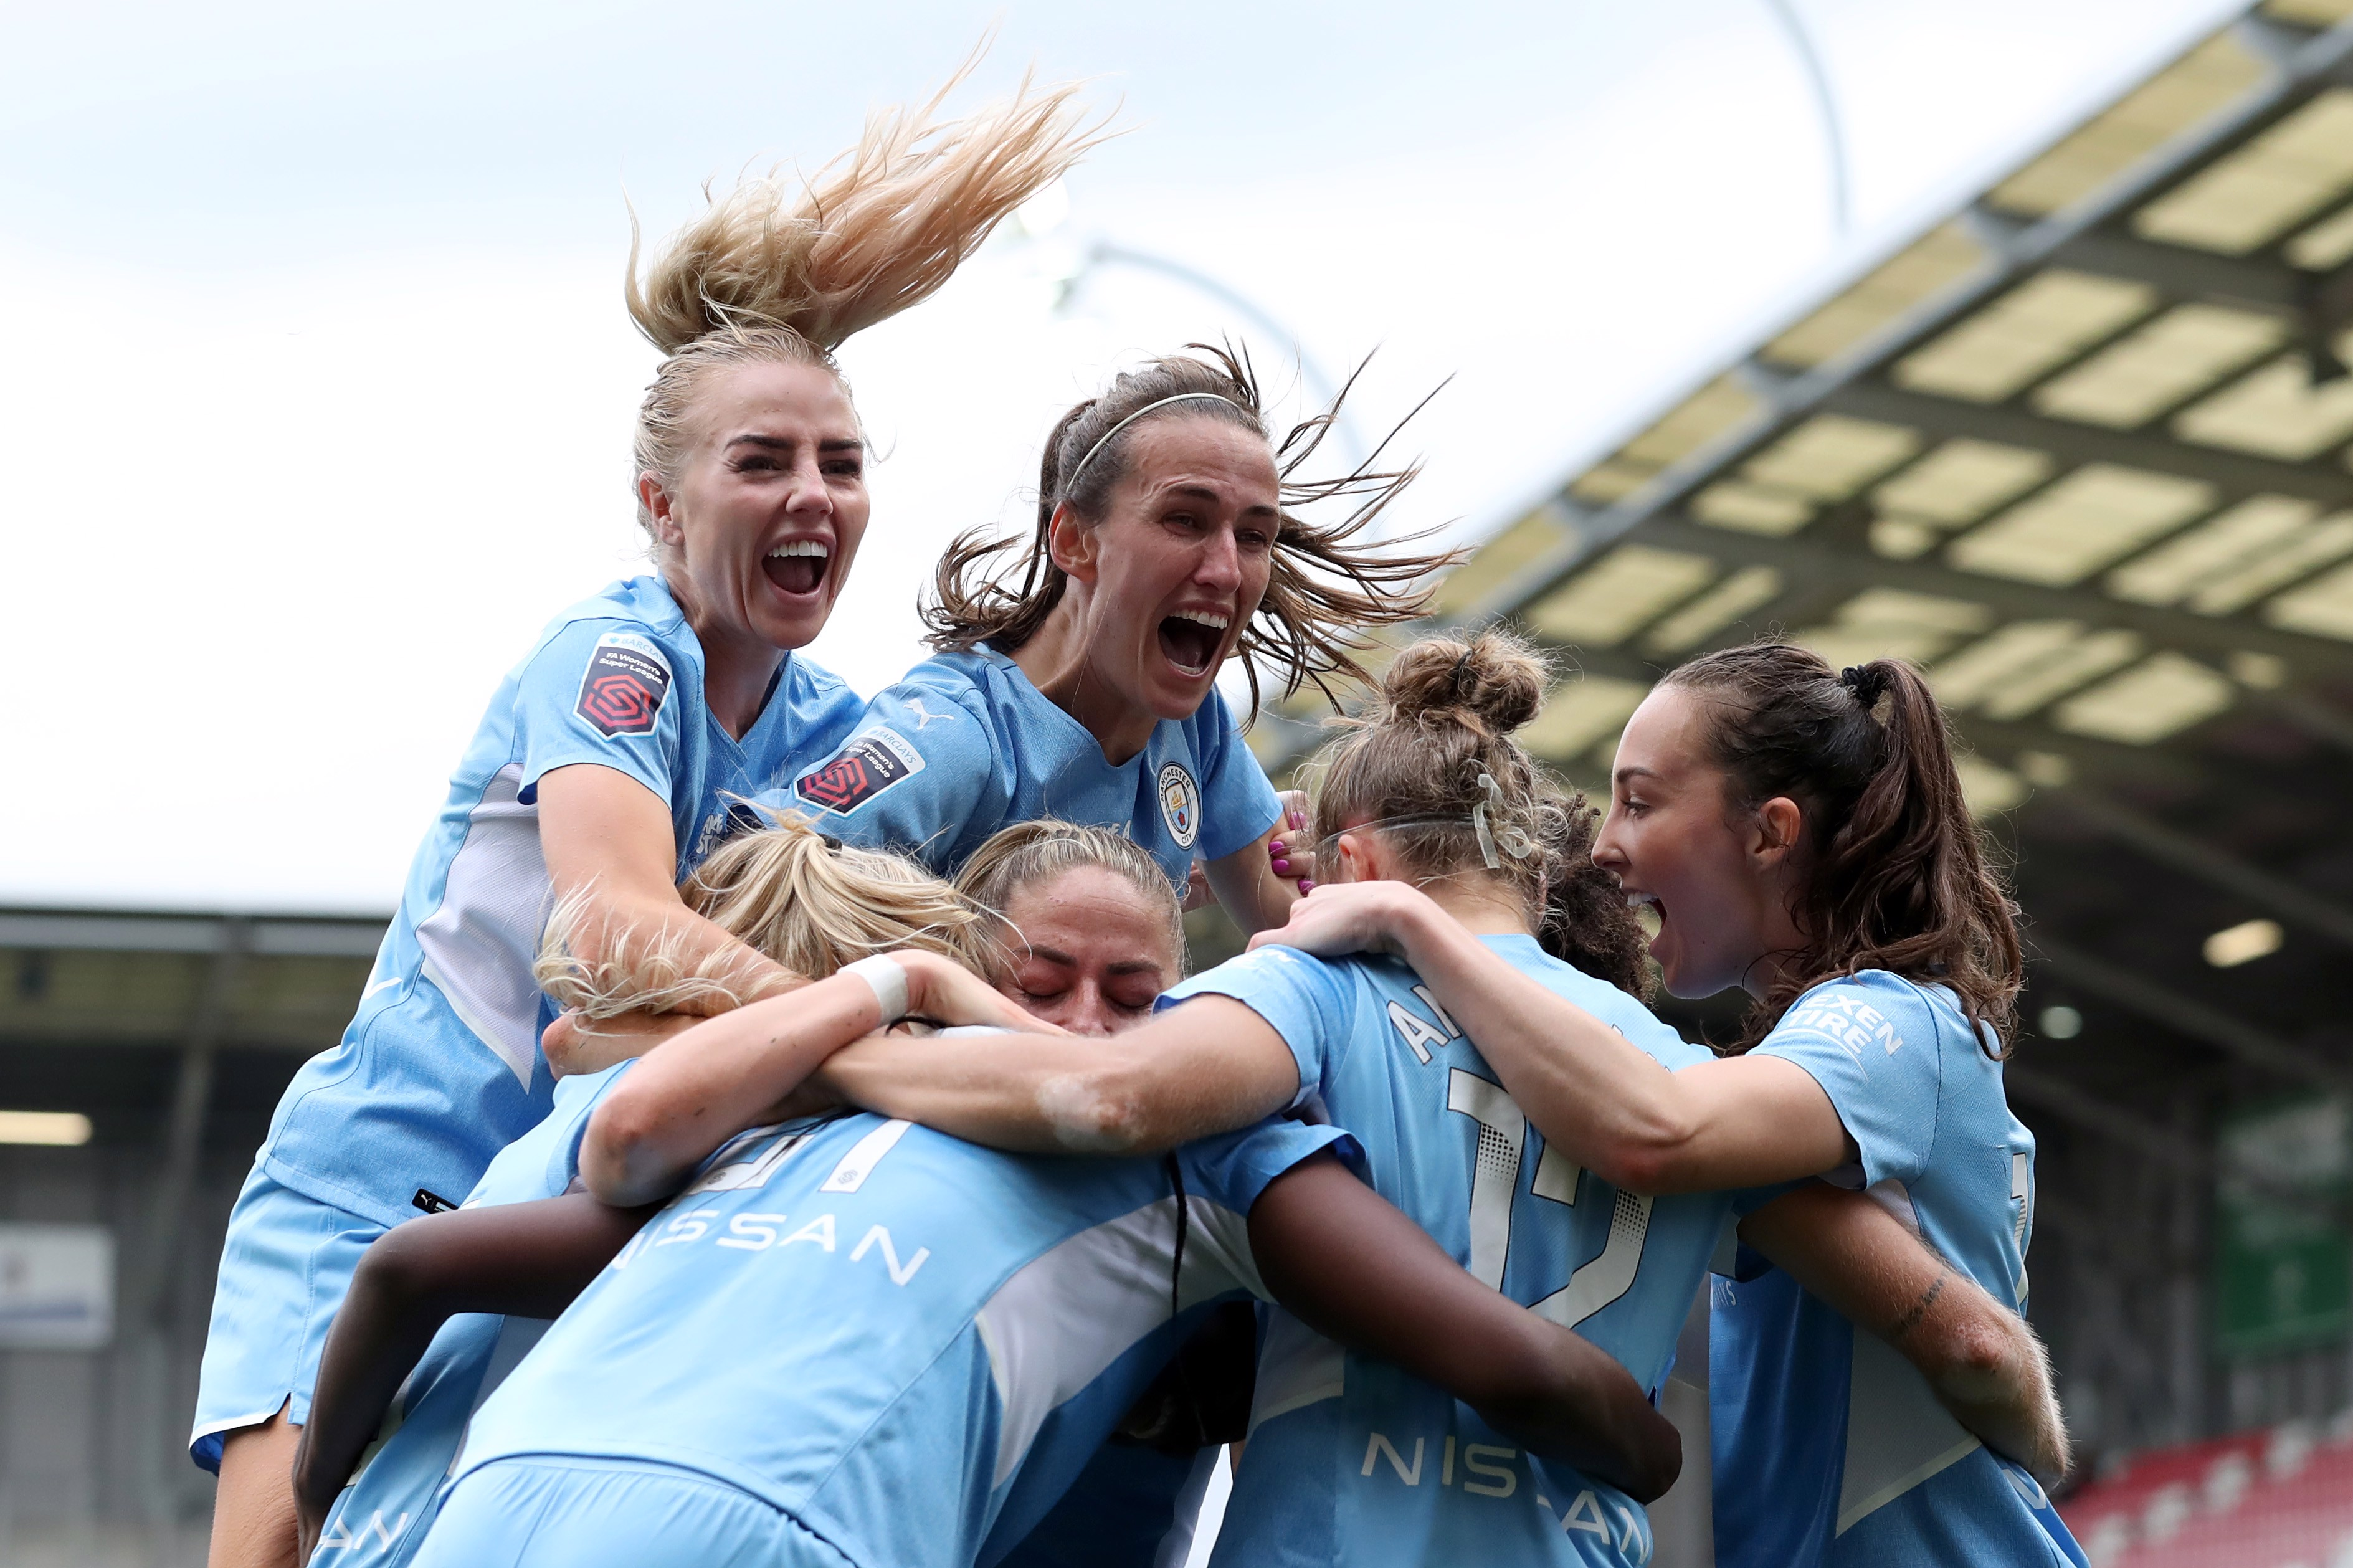 LEVEL BEST: City showed huge character to fight back and claim a point